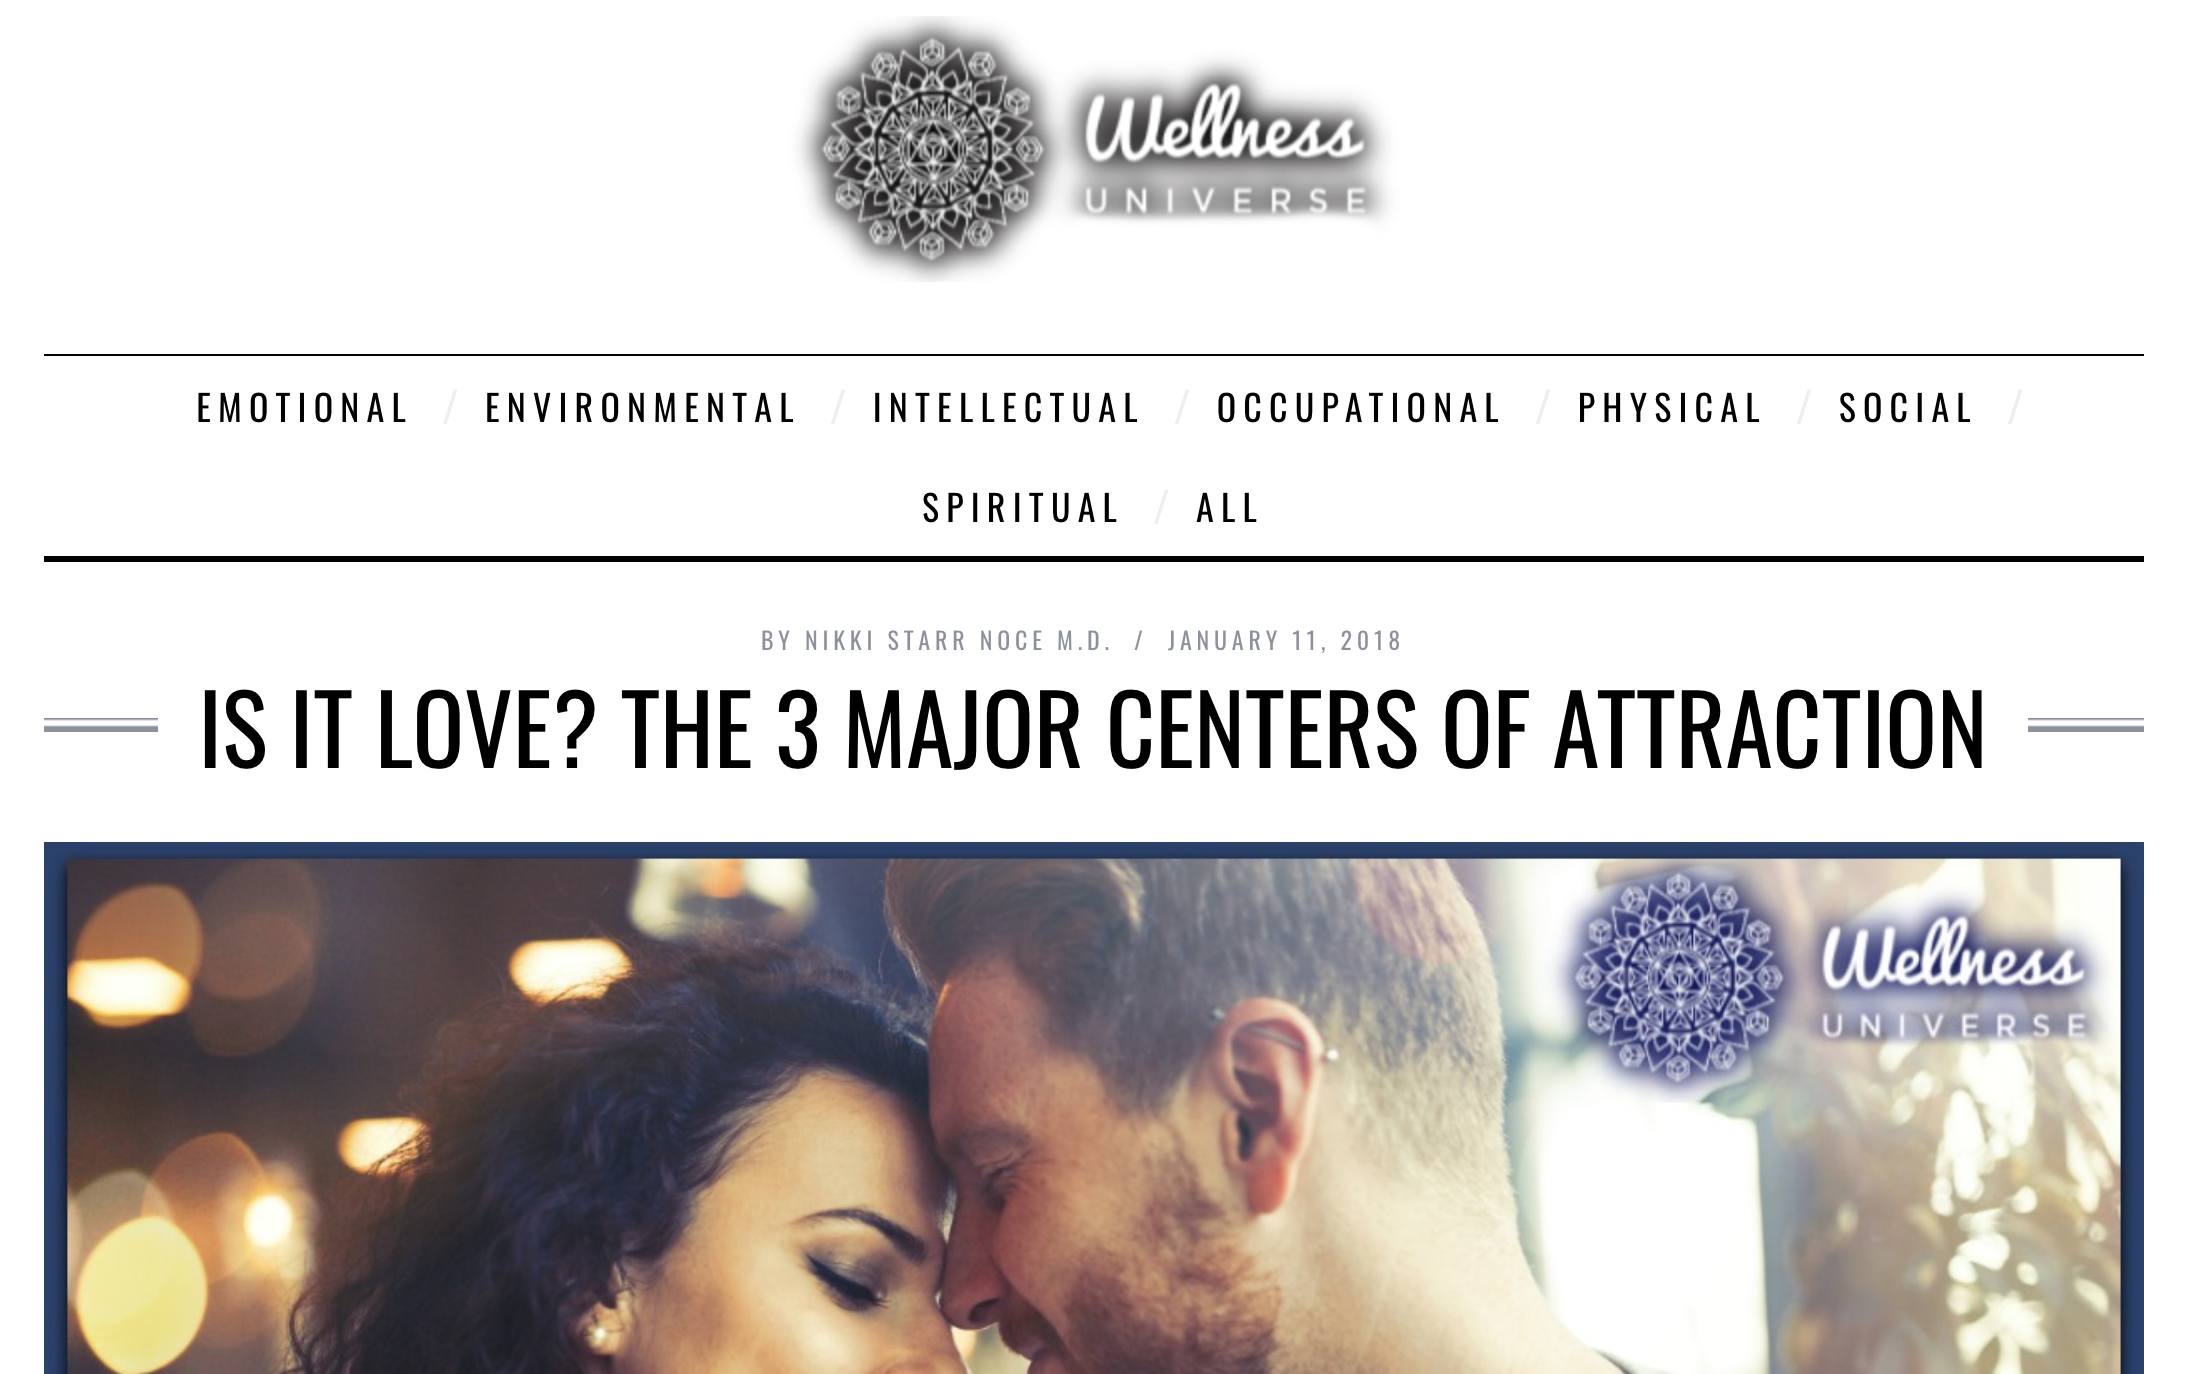 Is it Love?     Not necessarily. The moment there is a strong attraction, most people automatically think it means to love or have a romantic interest. Though this could be true, there are many reasons to feel an attraction towards someone.